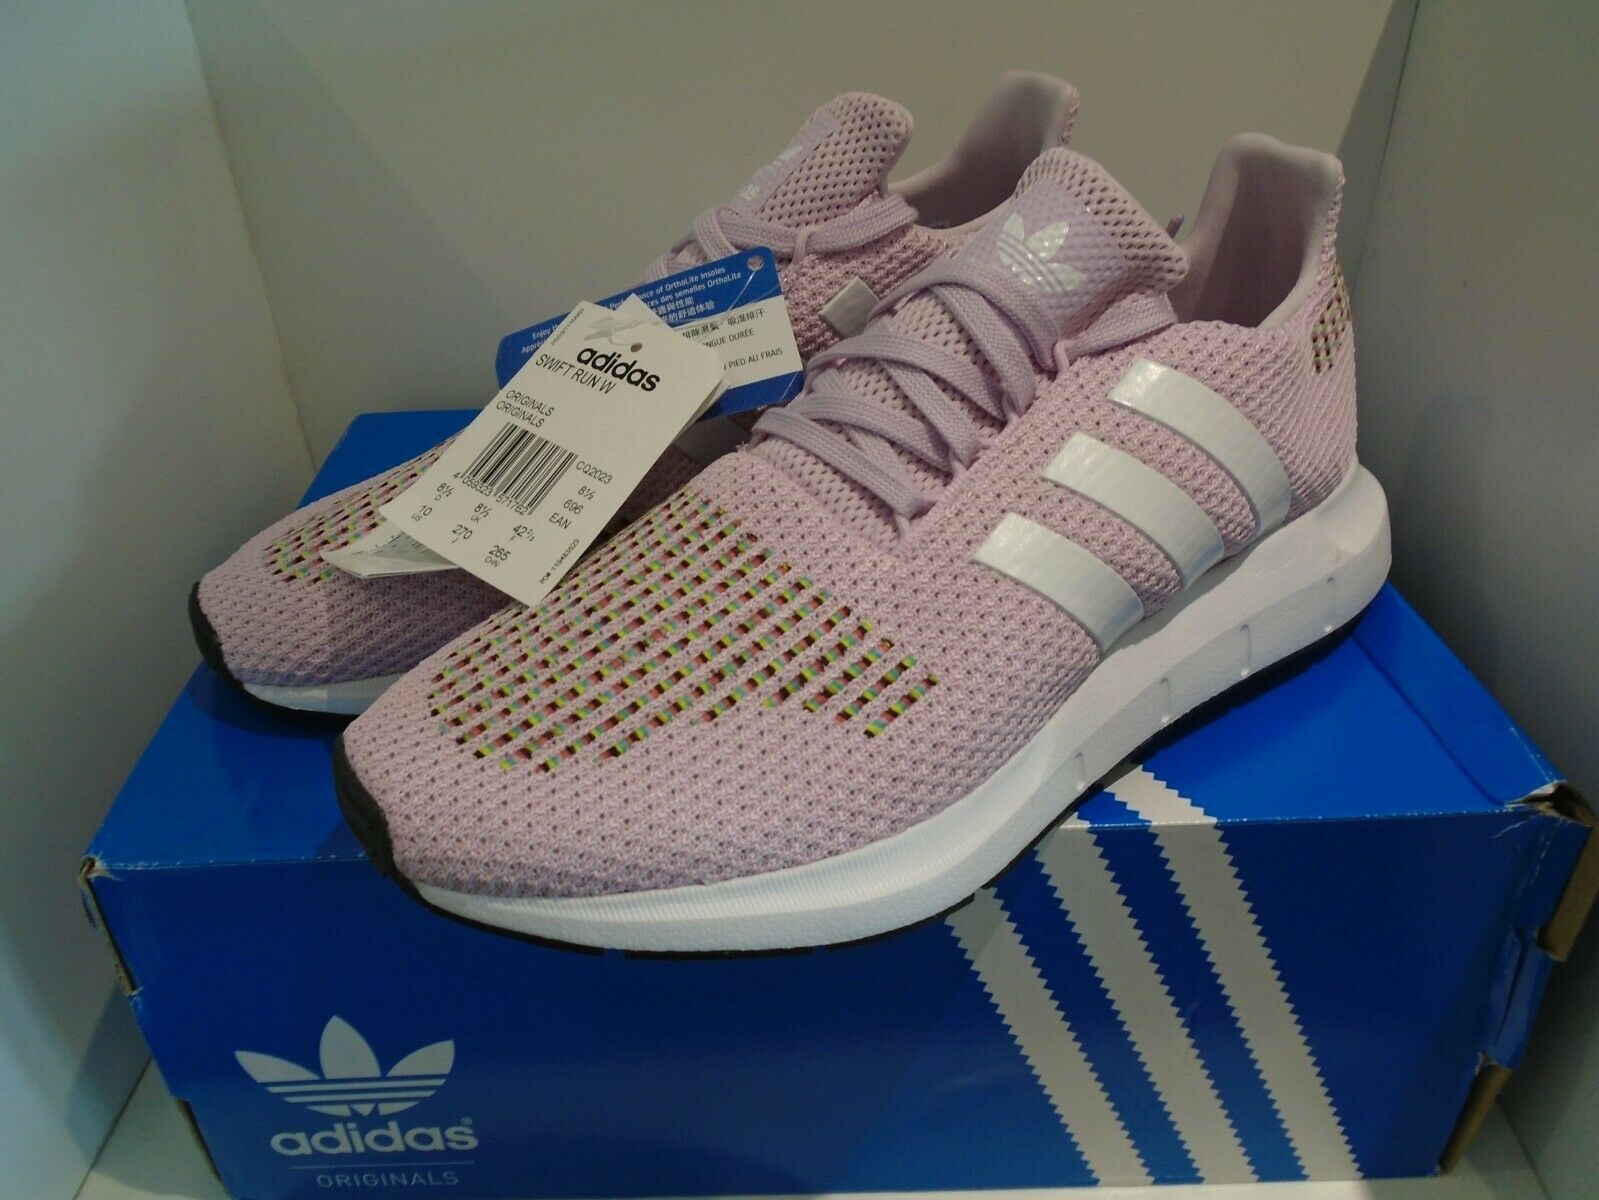 8c78c0fcf2f0a BNIB Womens adidas Originals Swift Run Trainers In Aero Pink 8.5 UK  oyjwra2362-Women s Trainers